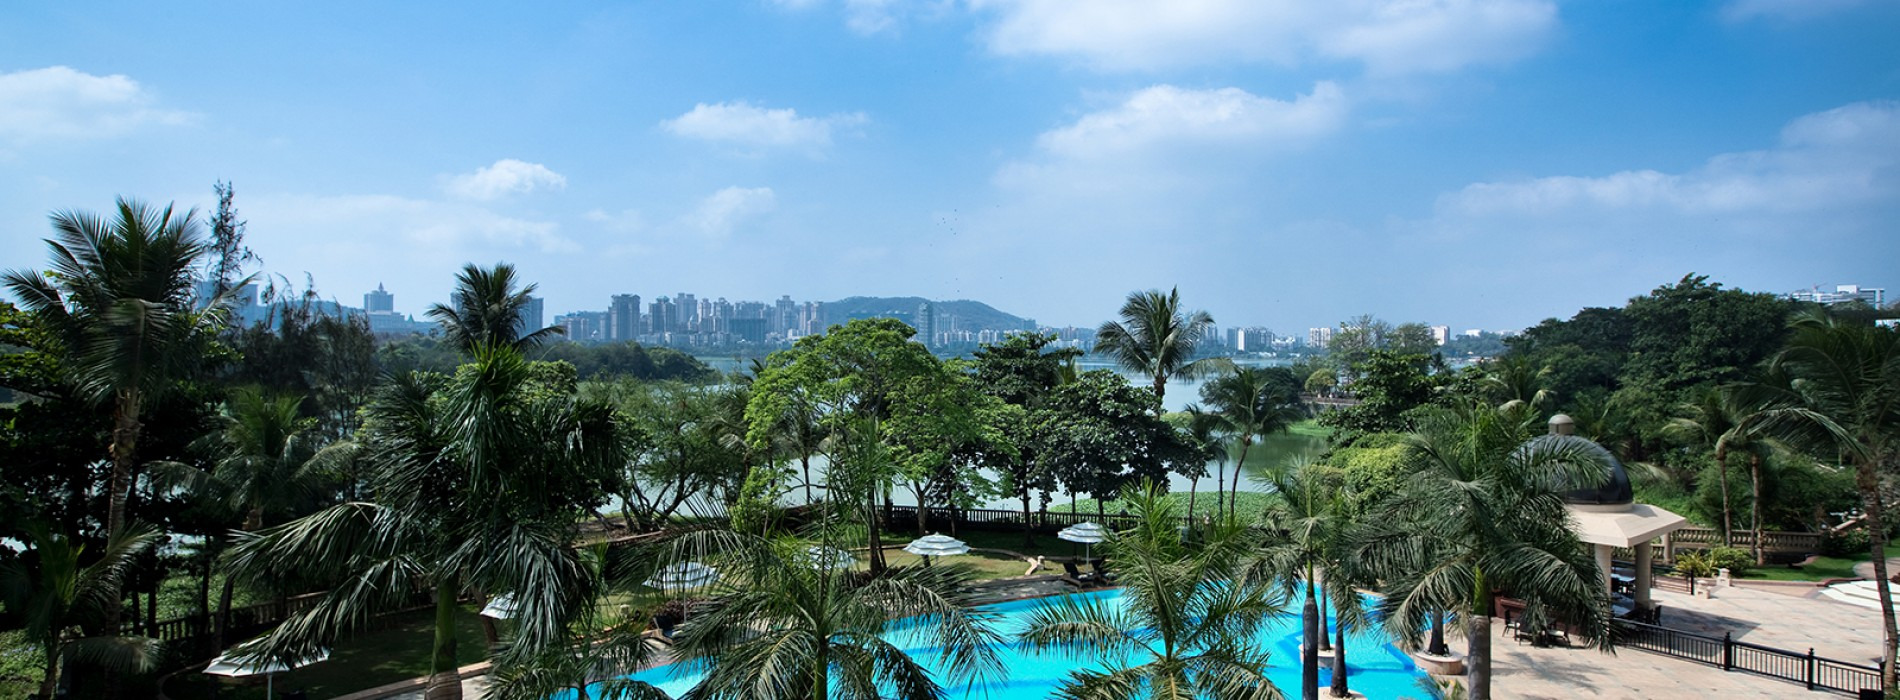 Celebrate Father's Day weekend with luxurious stay at the Renaissance Mumbai